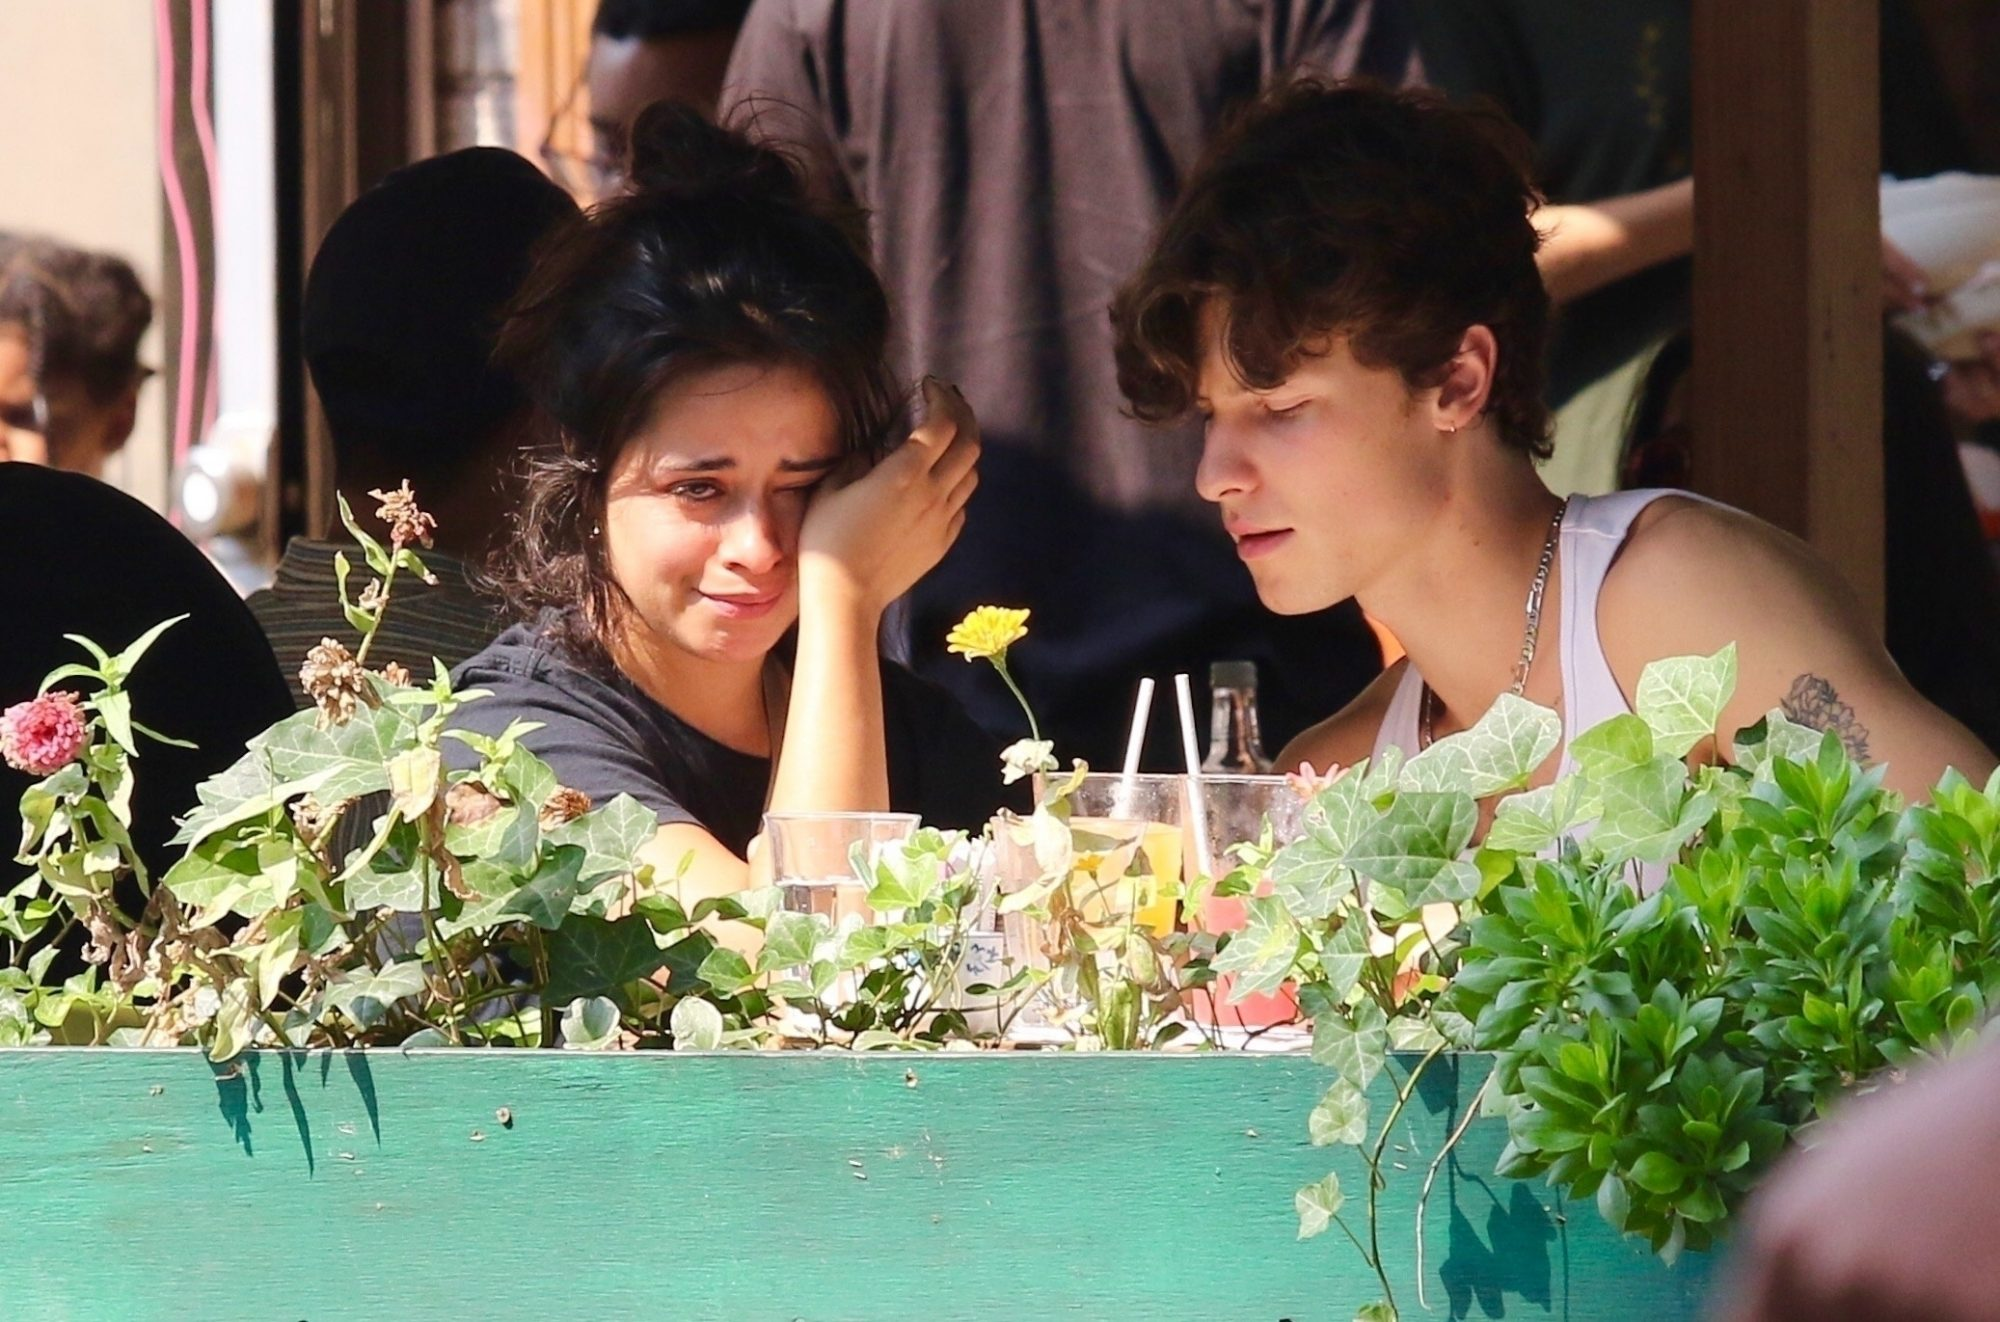 Camila Cabello is Seen Crying while Shawn Mendes Kisses her in NYC